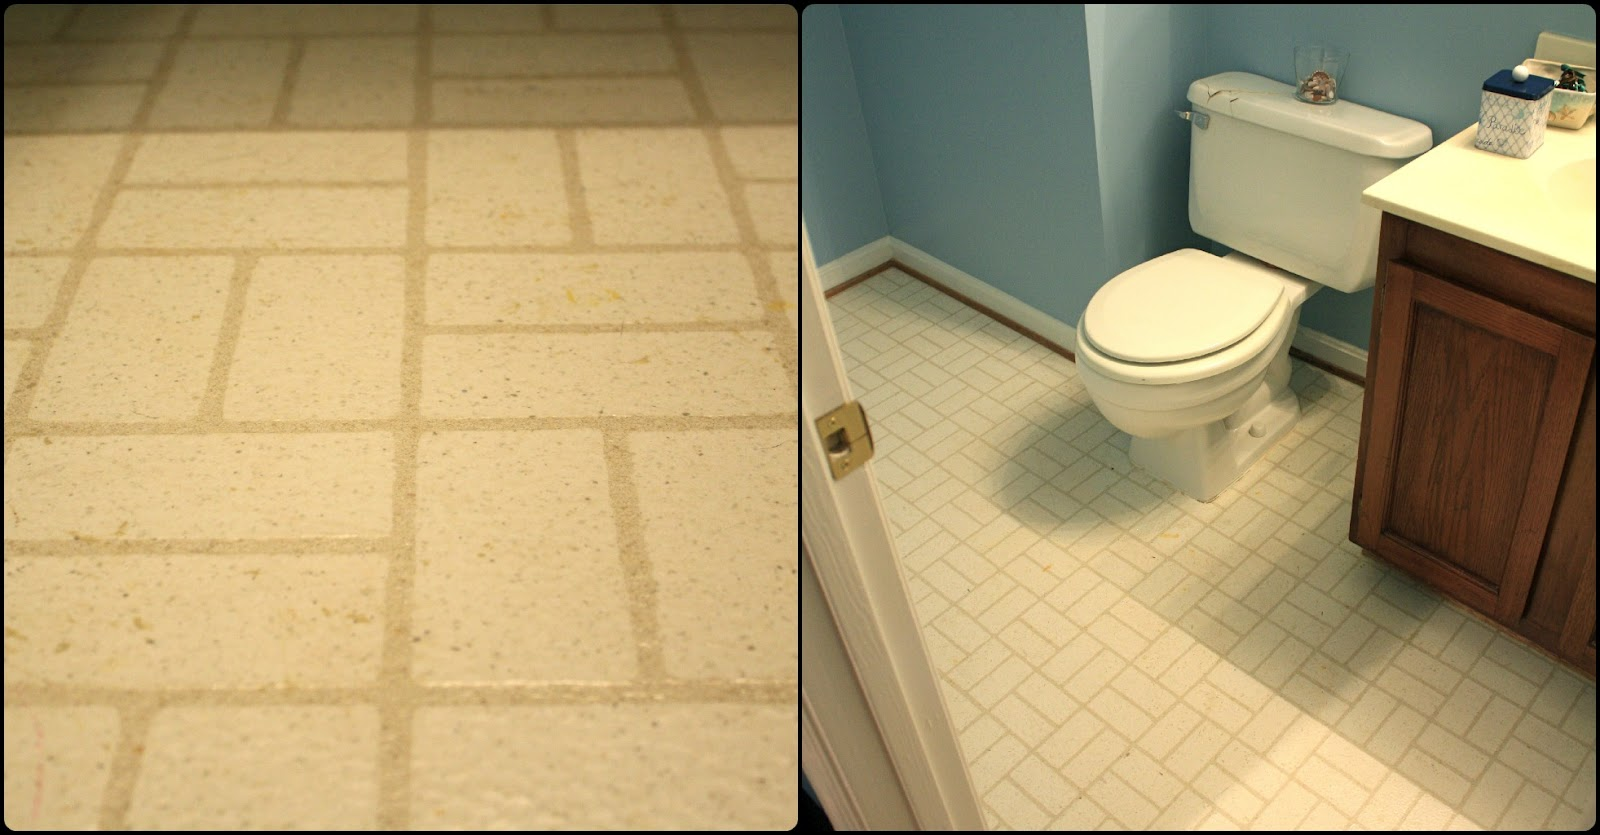 Http Simplydiy2 Blogspot Com 2012 09 Bathroom Floor Part 1 Before Grout Html